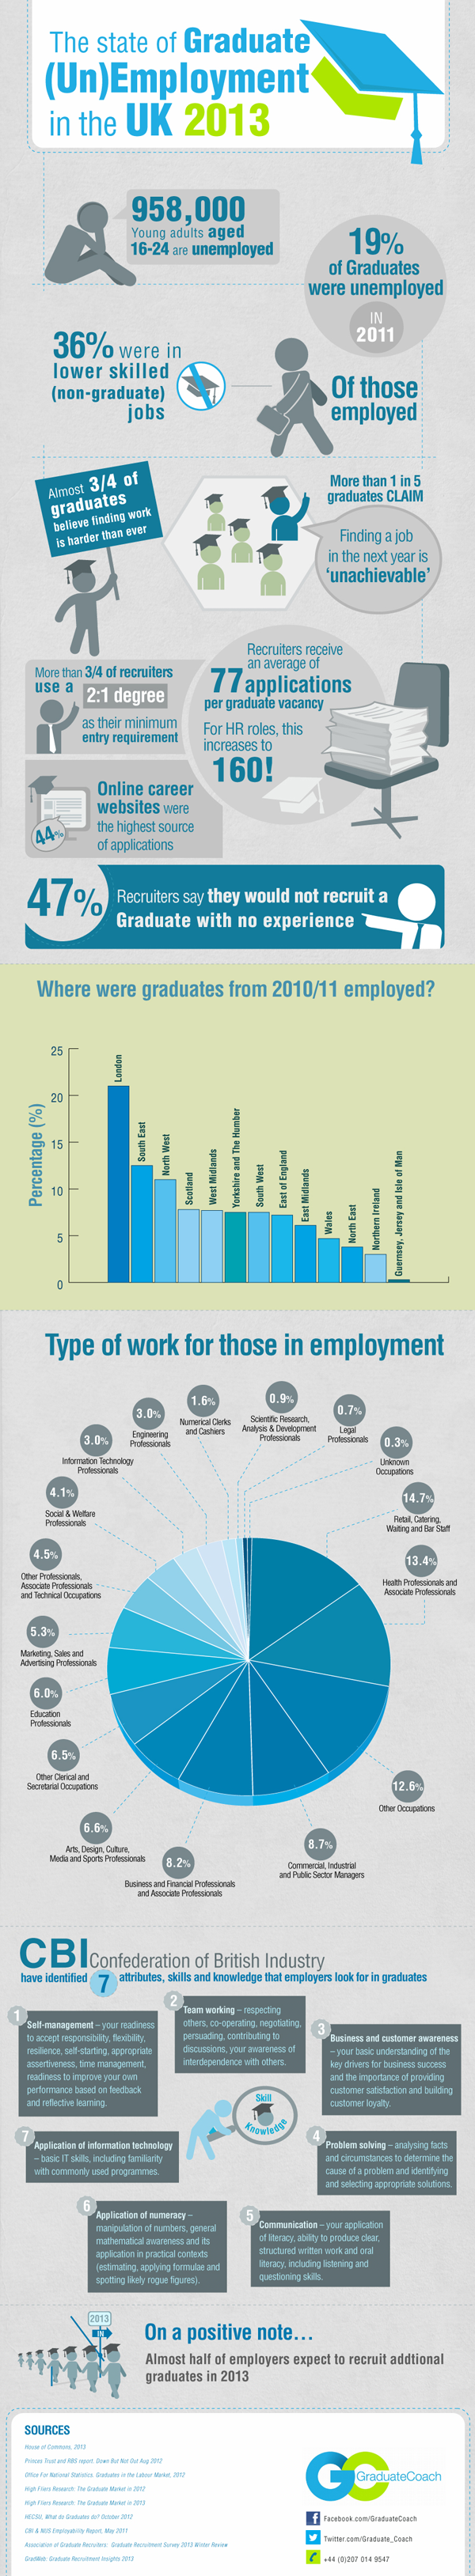 Graduate Unemployment in the UK 2013